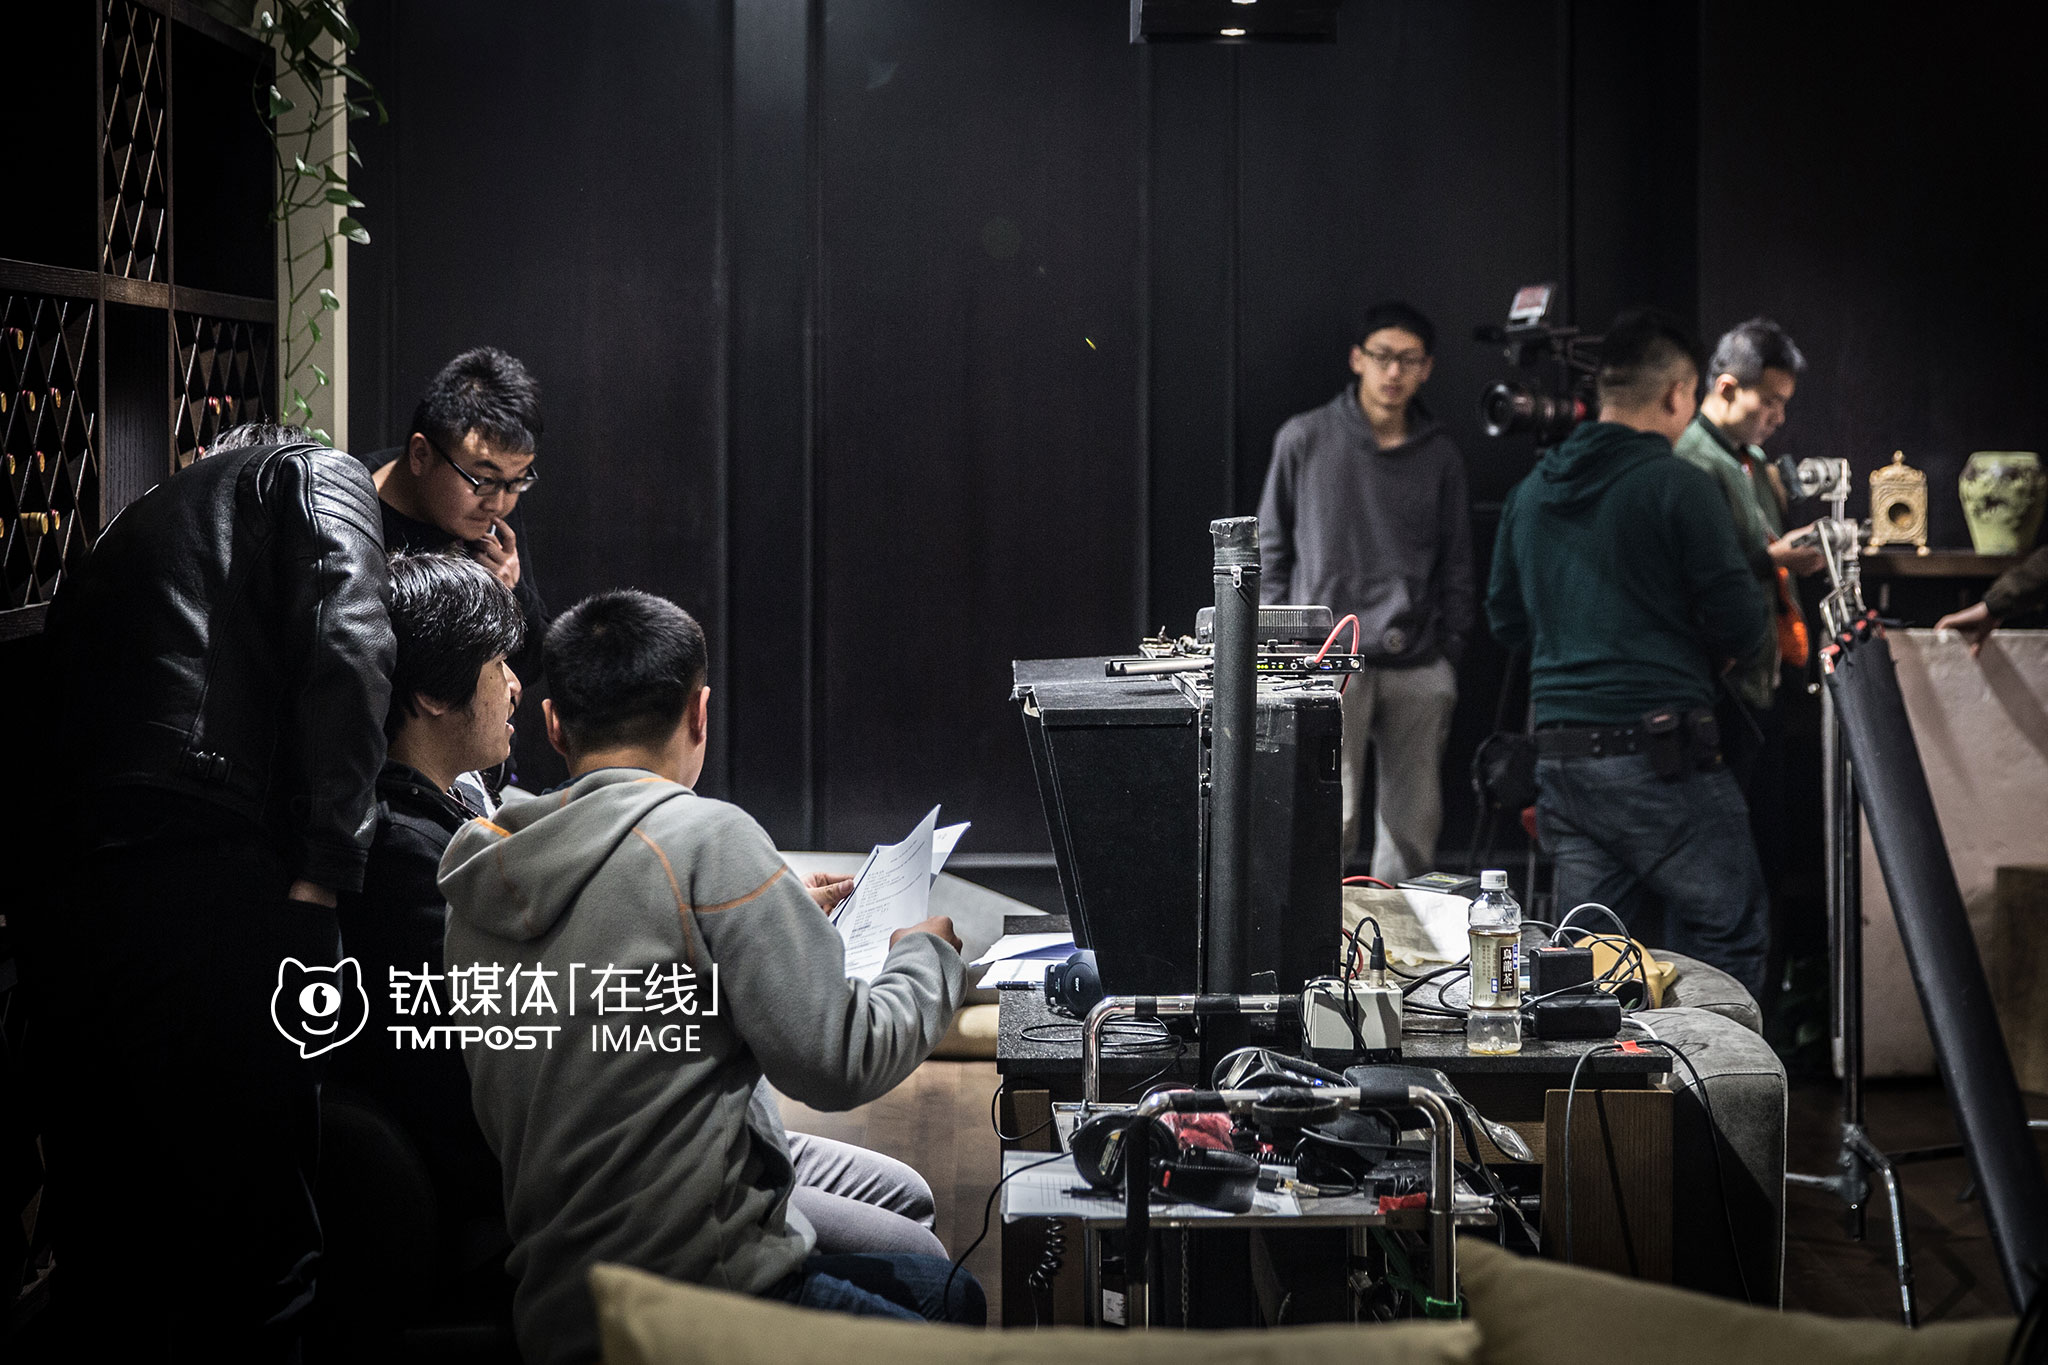 In the morning, the first scene was filmed at a furniture mall in Beijing. Everyone in Boss season two's cast was born in the 90s. The whole filming experience is a great learning opportunity for them.